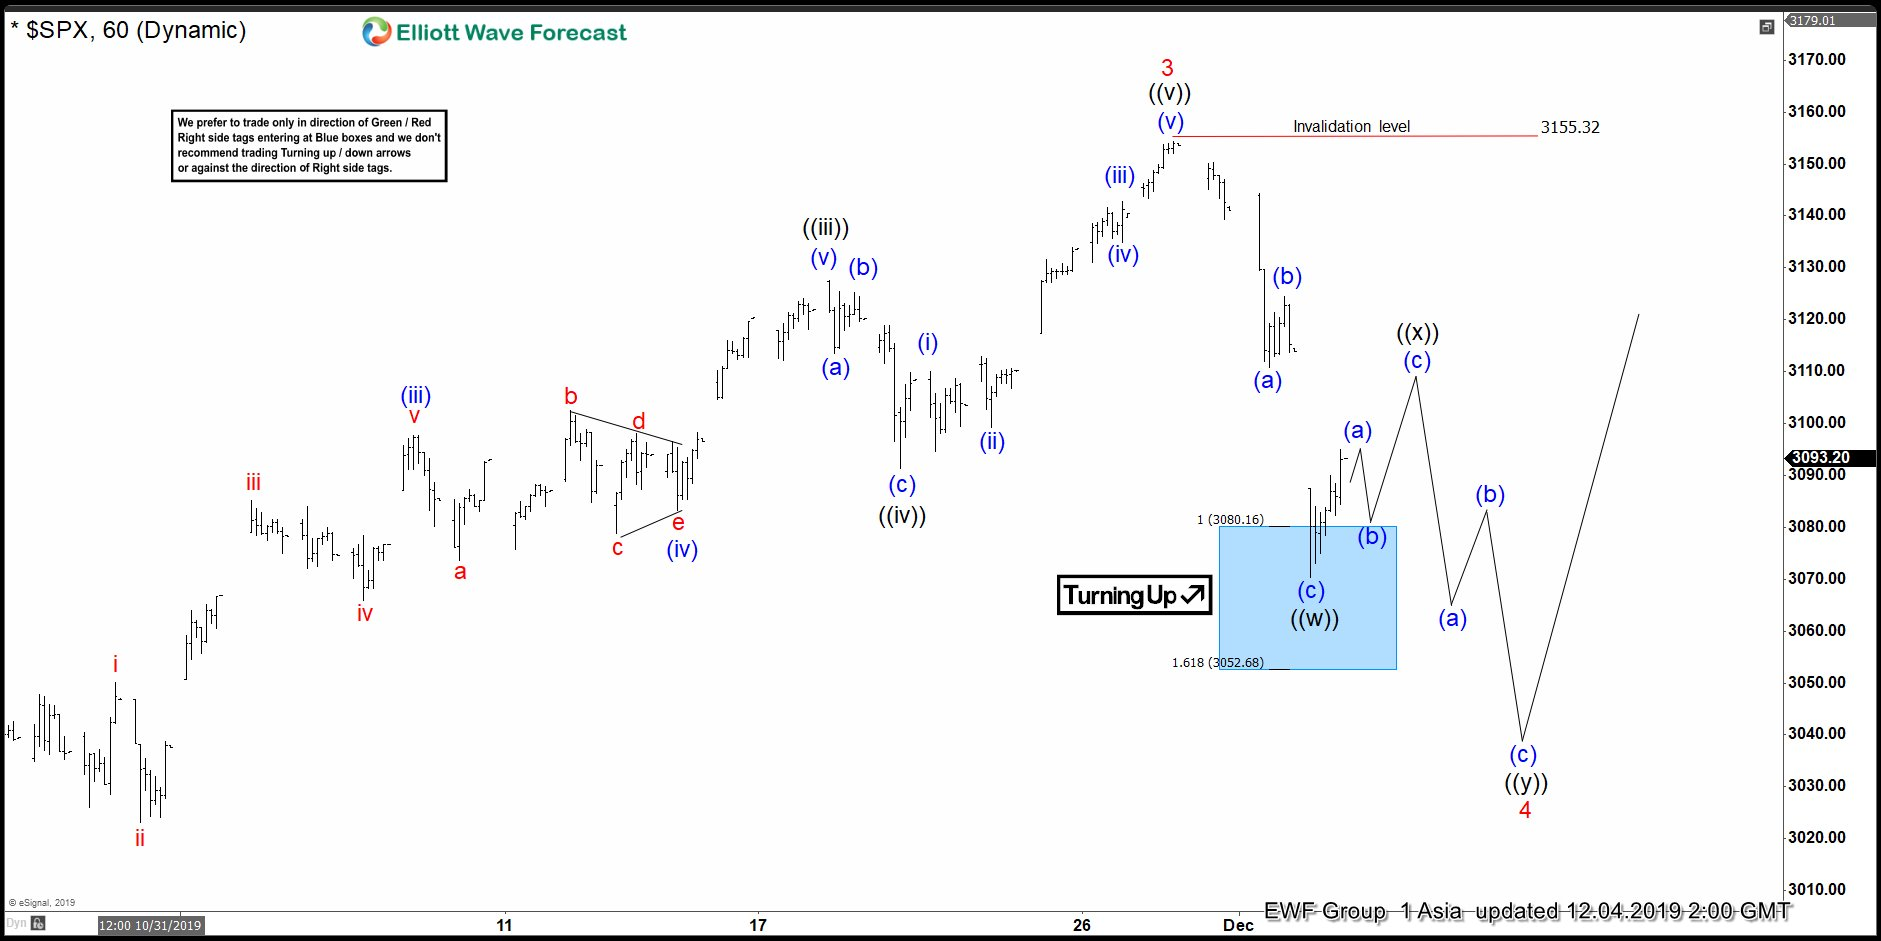 Elliott Wave View: SPX Correction in Progress